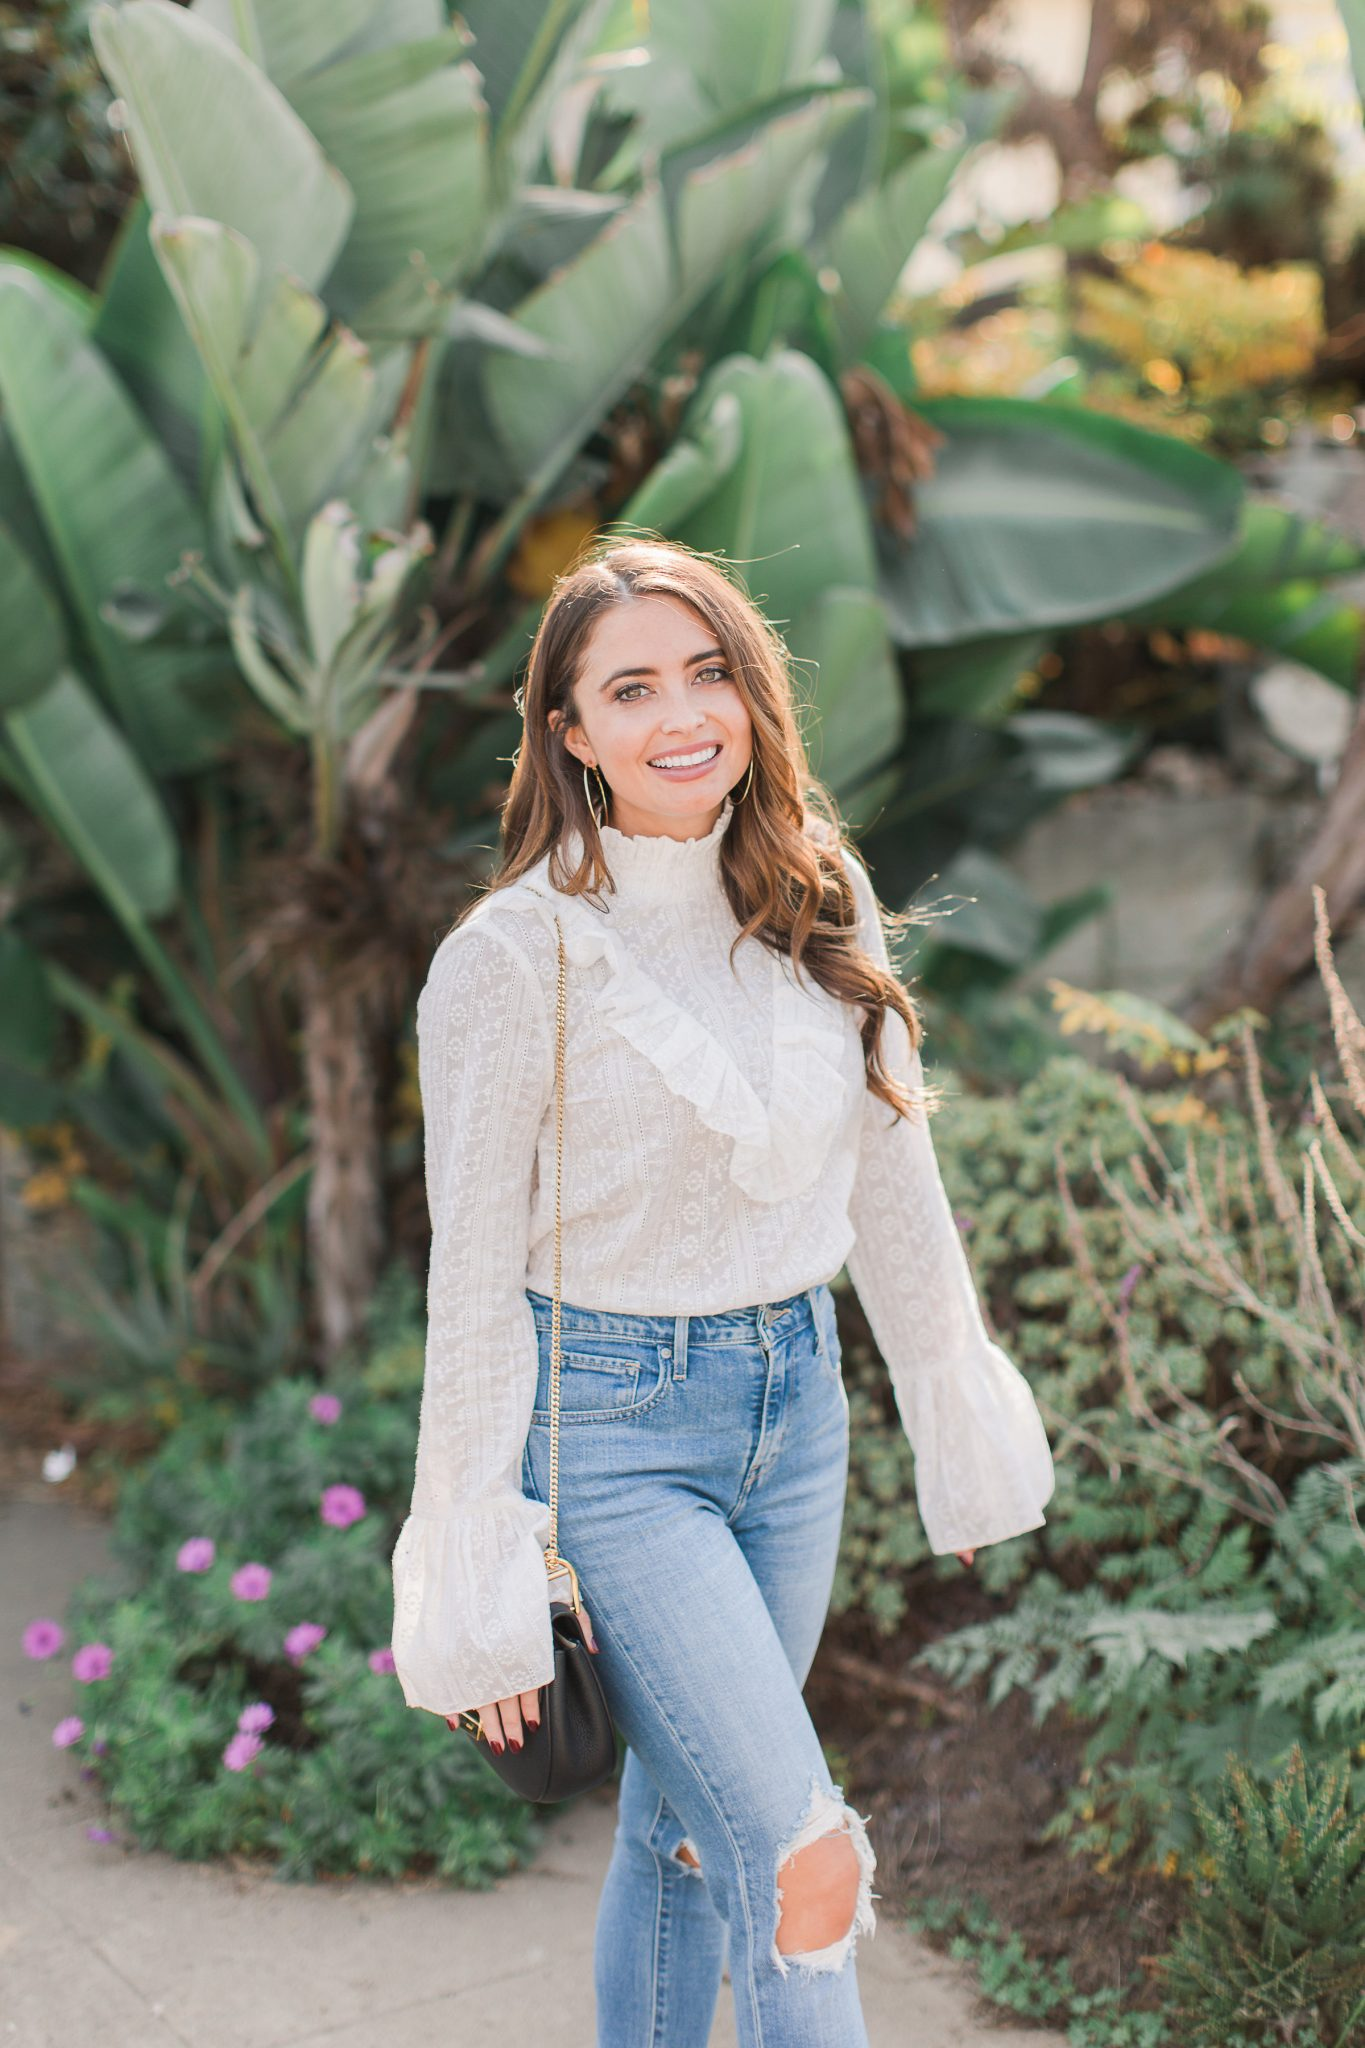 Maxie Elise | White lace top & distressed denim -New Year Resolutions by popular Orange County blogger Maxie Elise